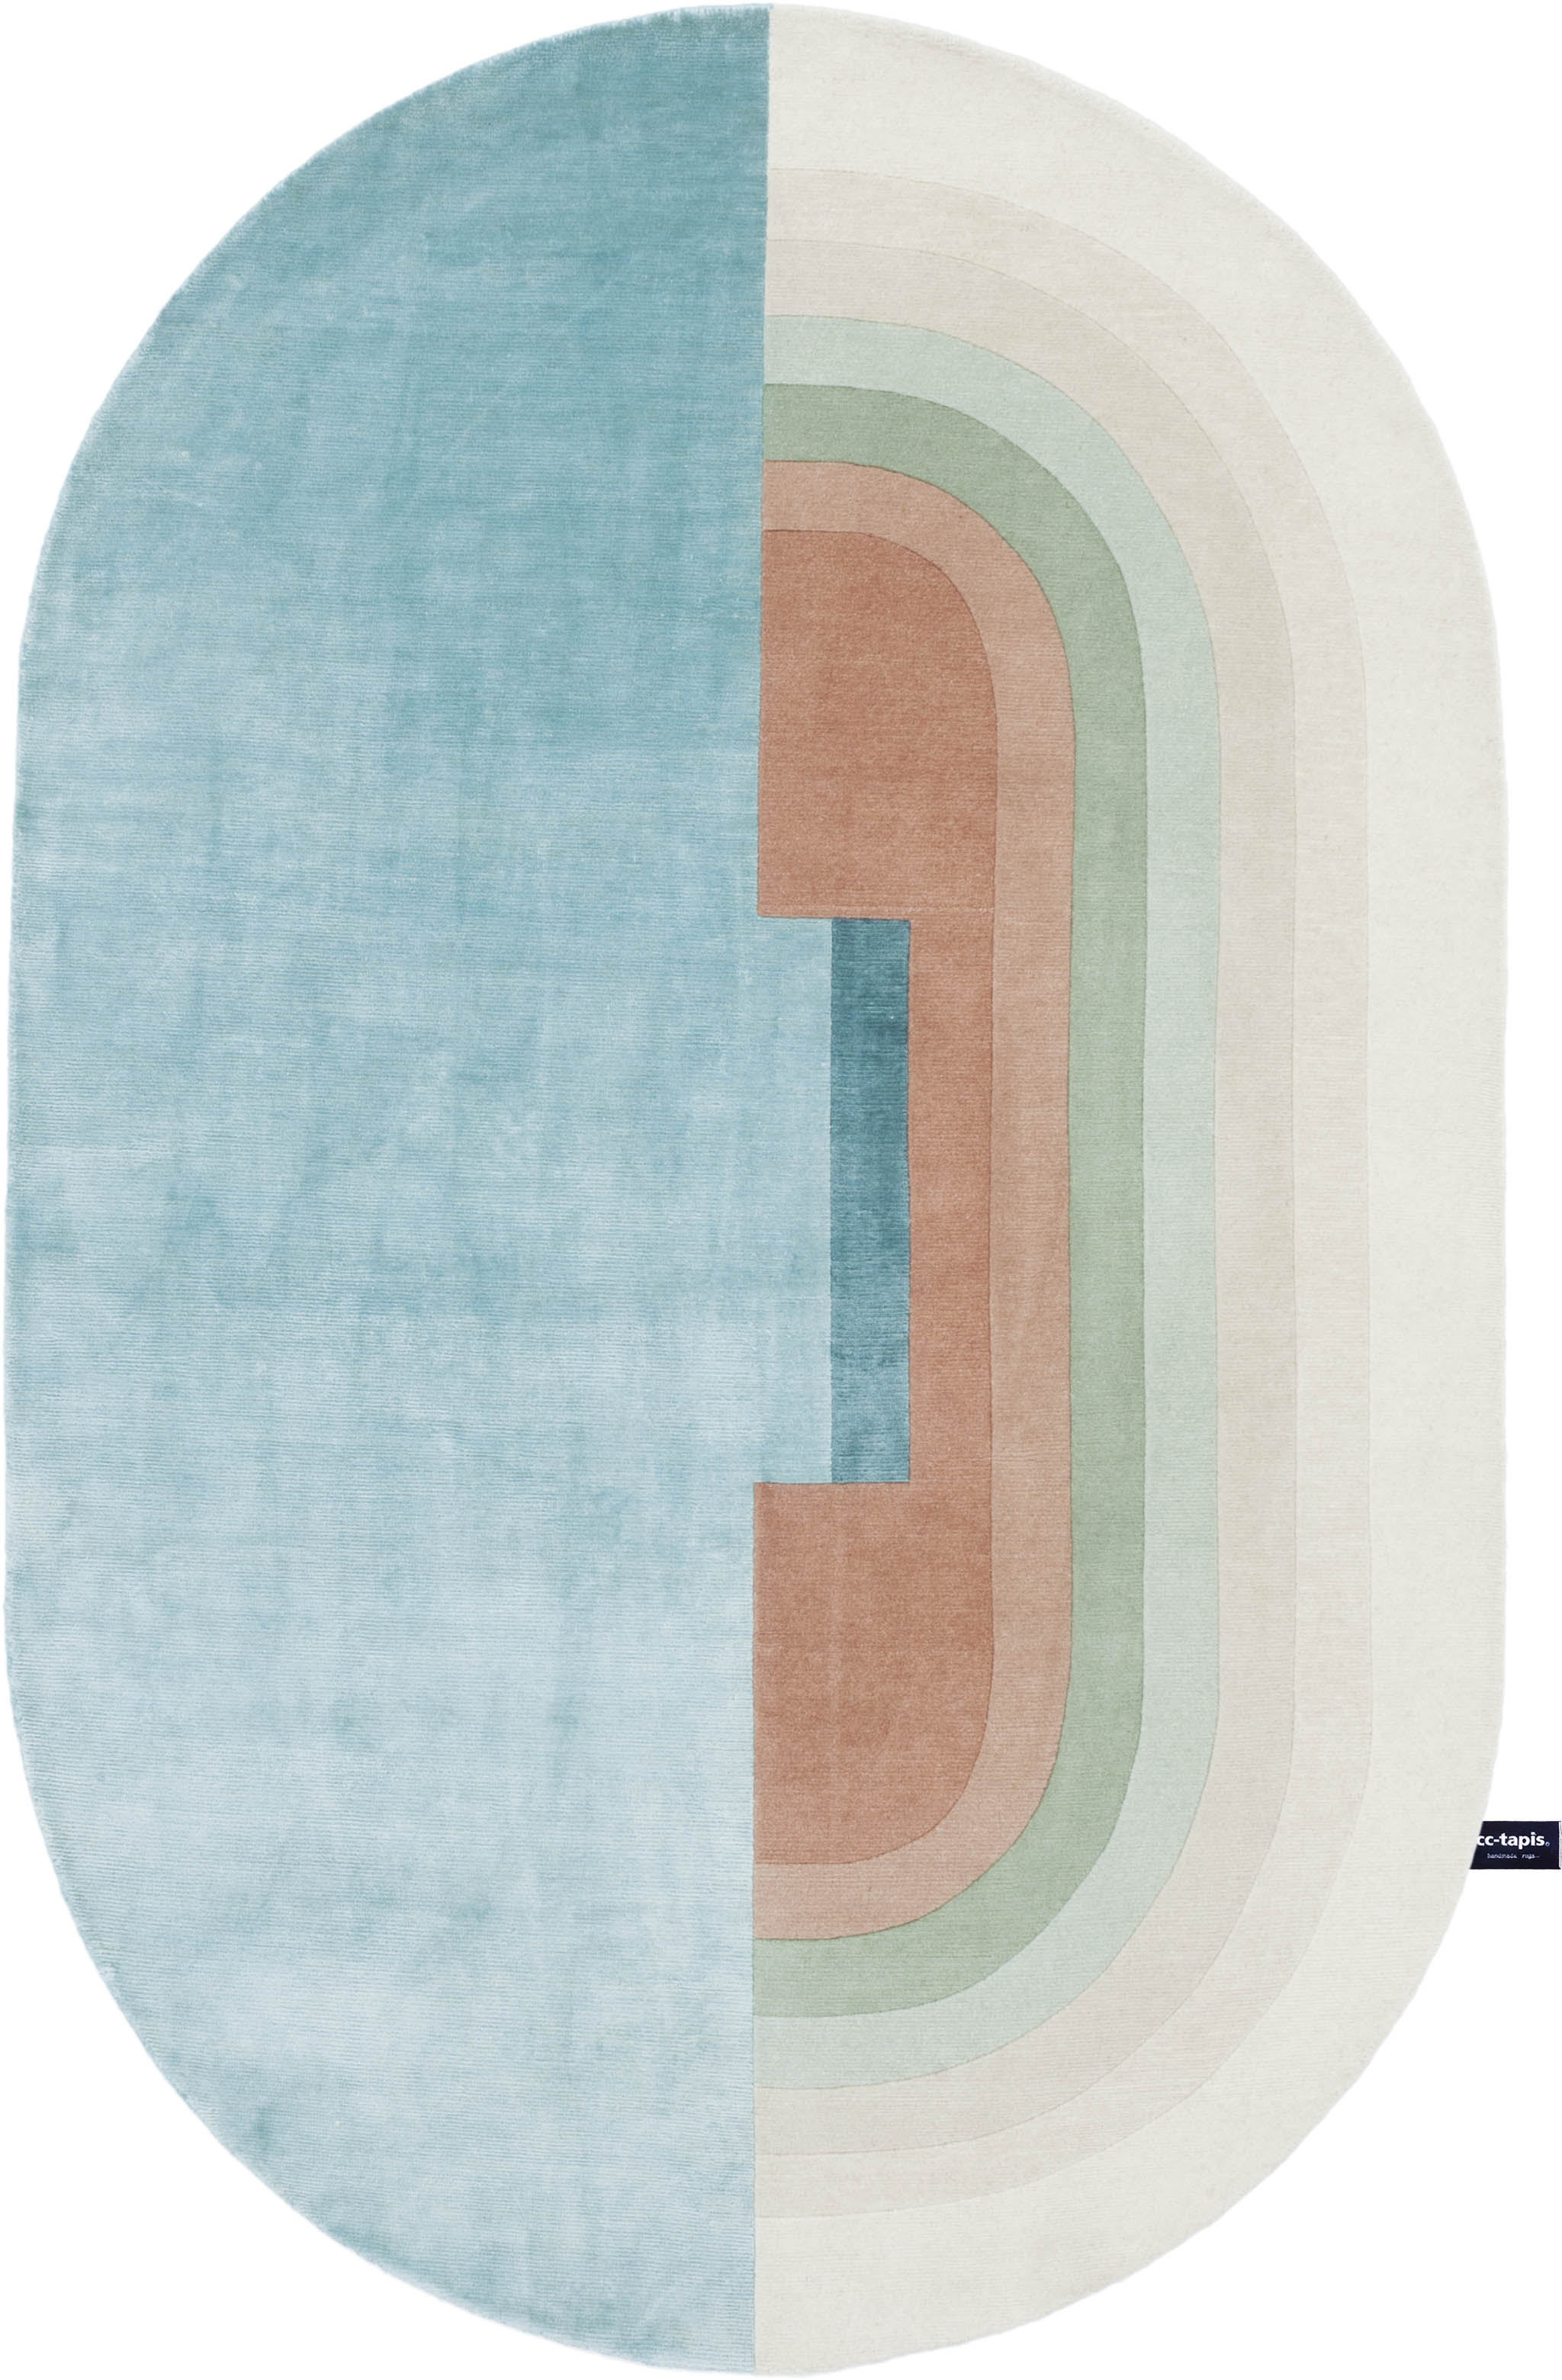 'Giudecca' by Zanellato Bortotto from the Signature Collection of cc-tapis. | Image courtesy of cc-tapis.